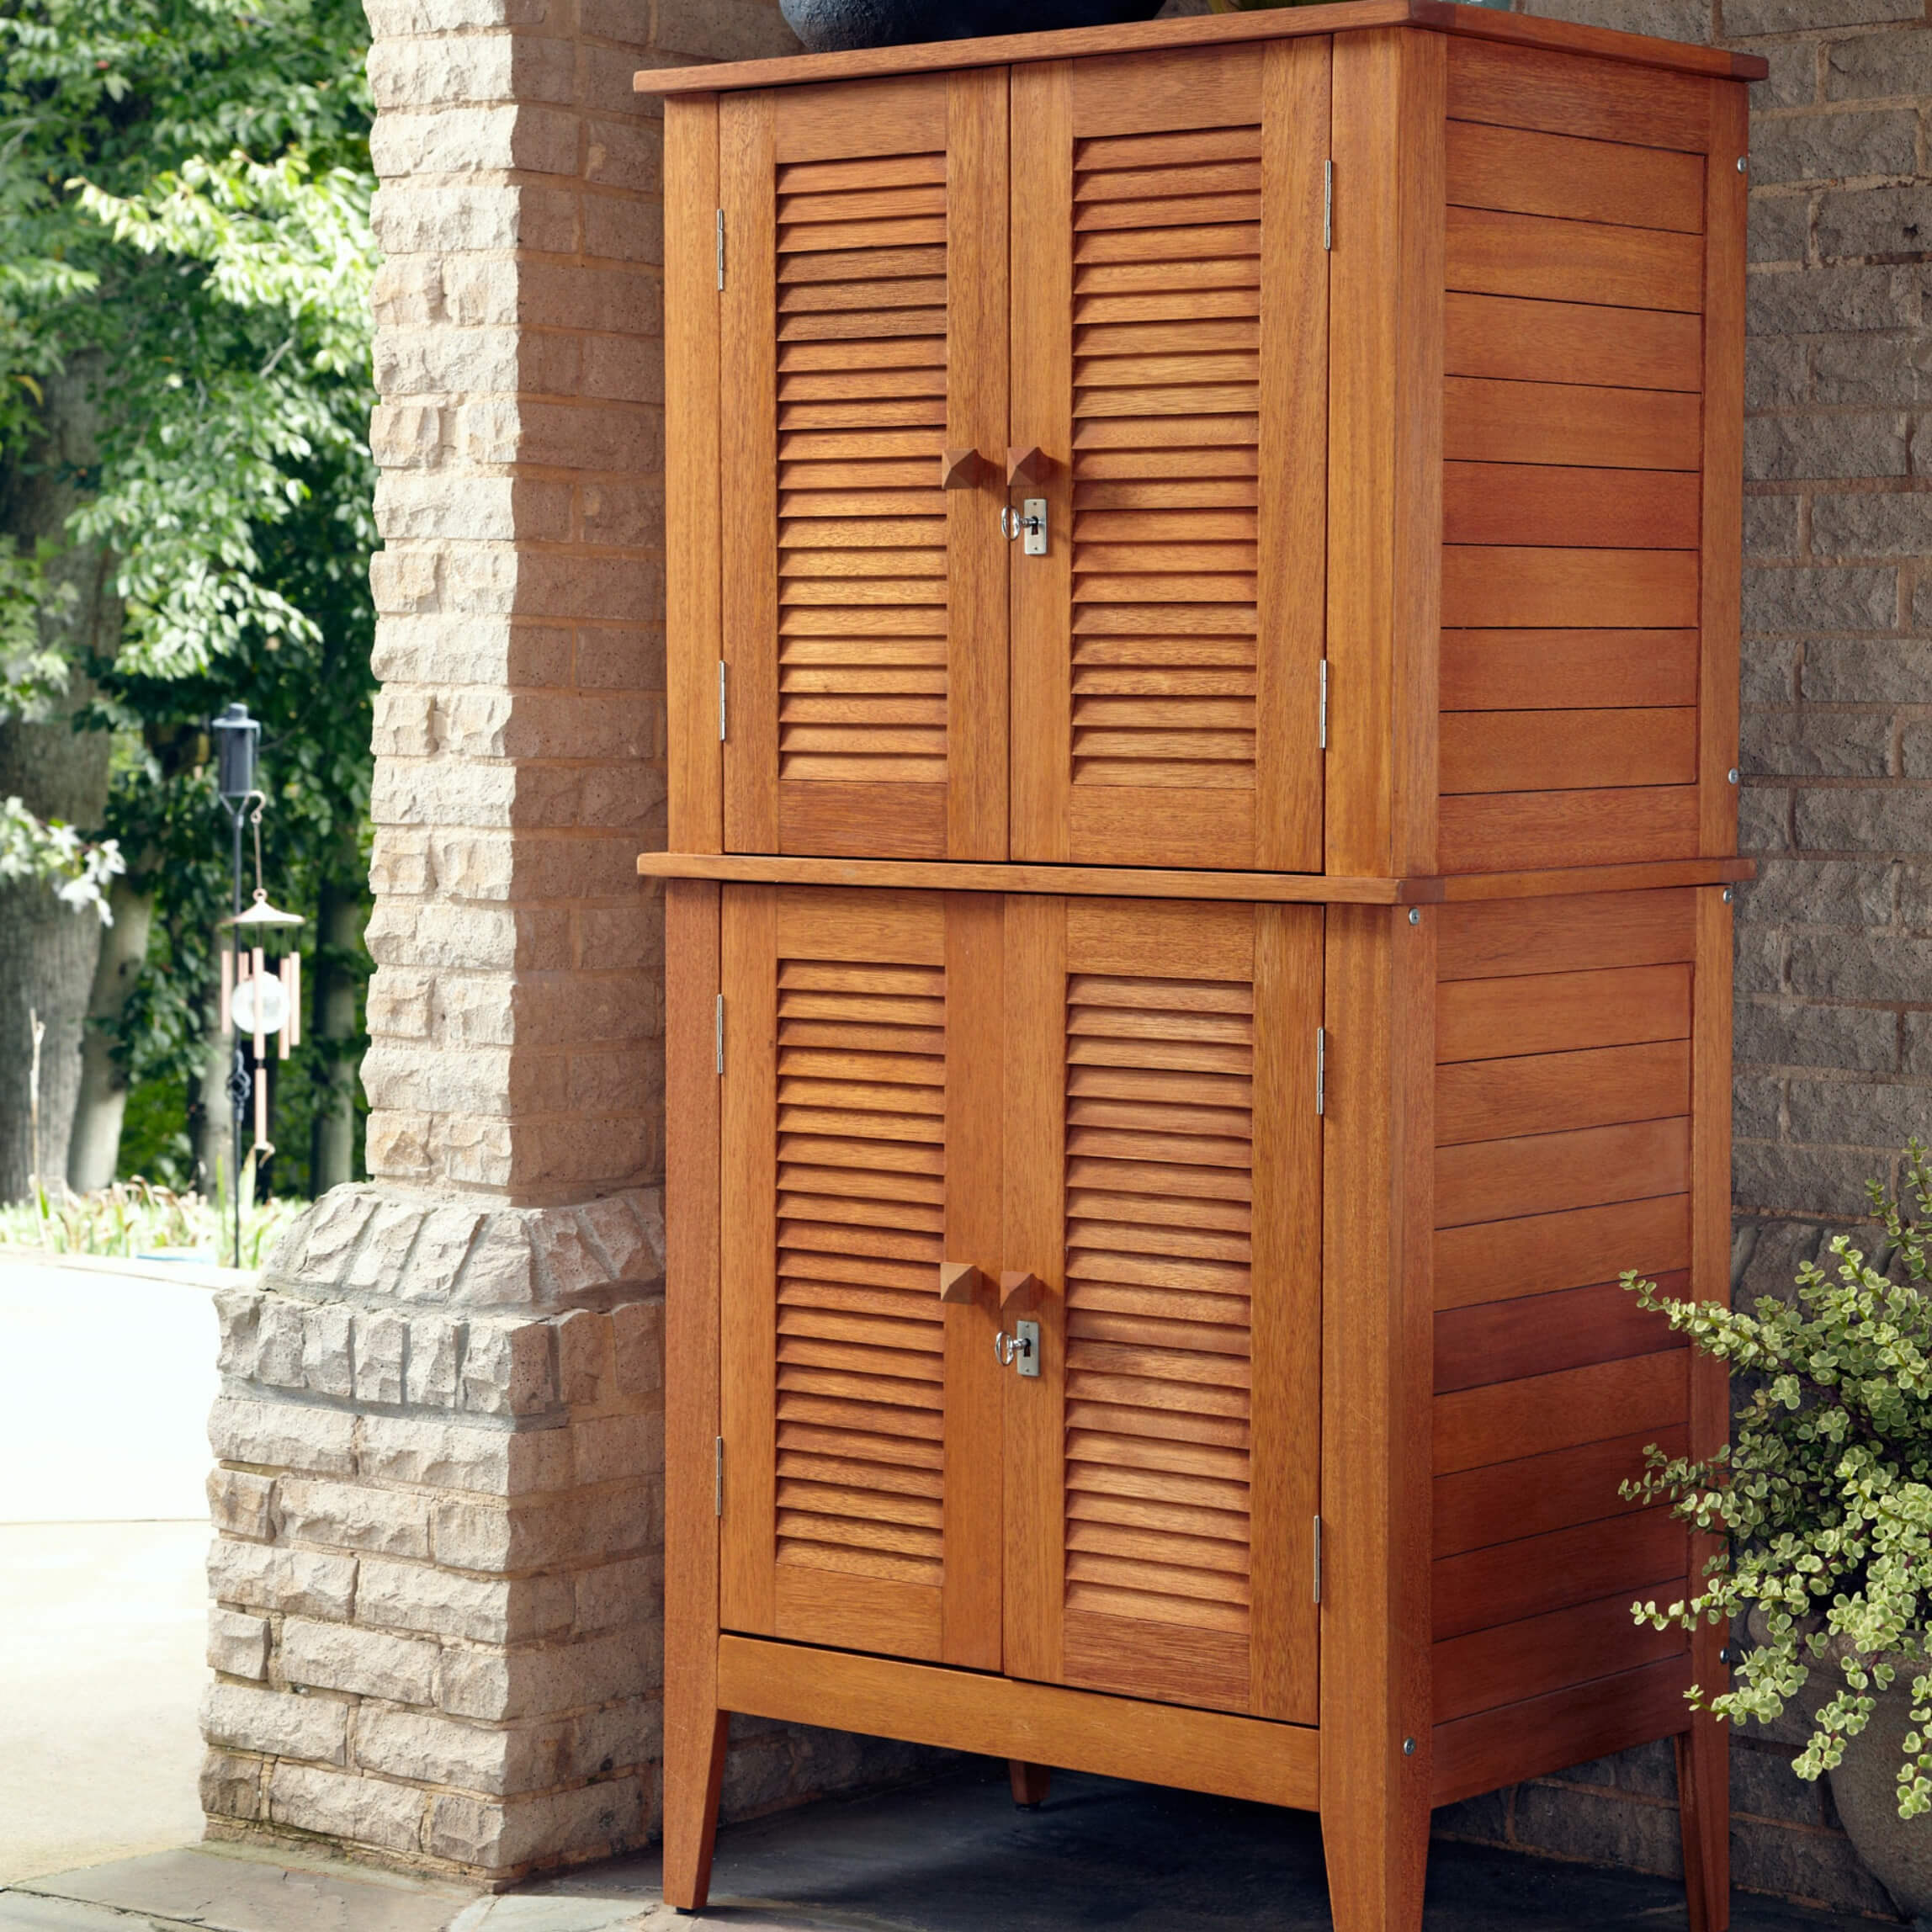 This beautiful and durable four-door storage cabinet is crafted out of eco-friendly Shore wood that is naturally water-resistant. The four double doors open to spacious shelves.